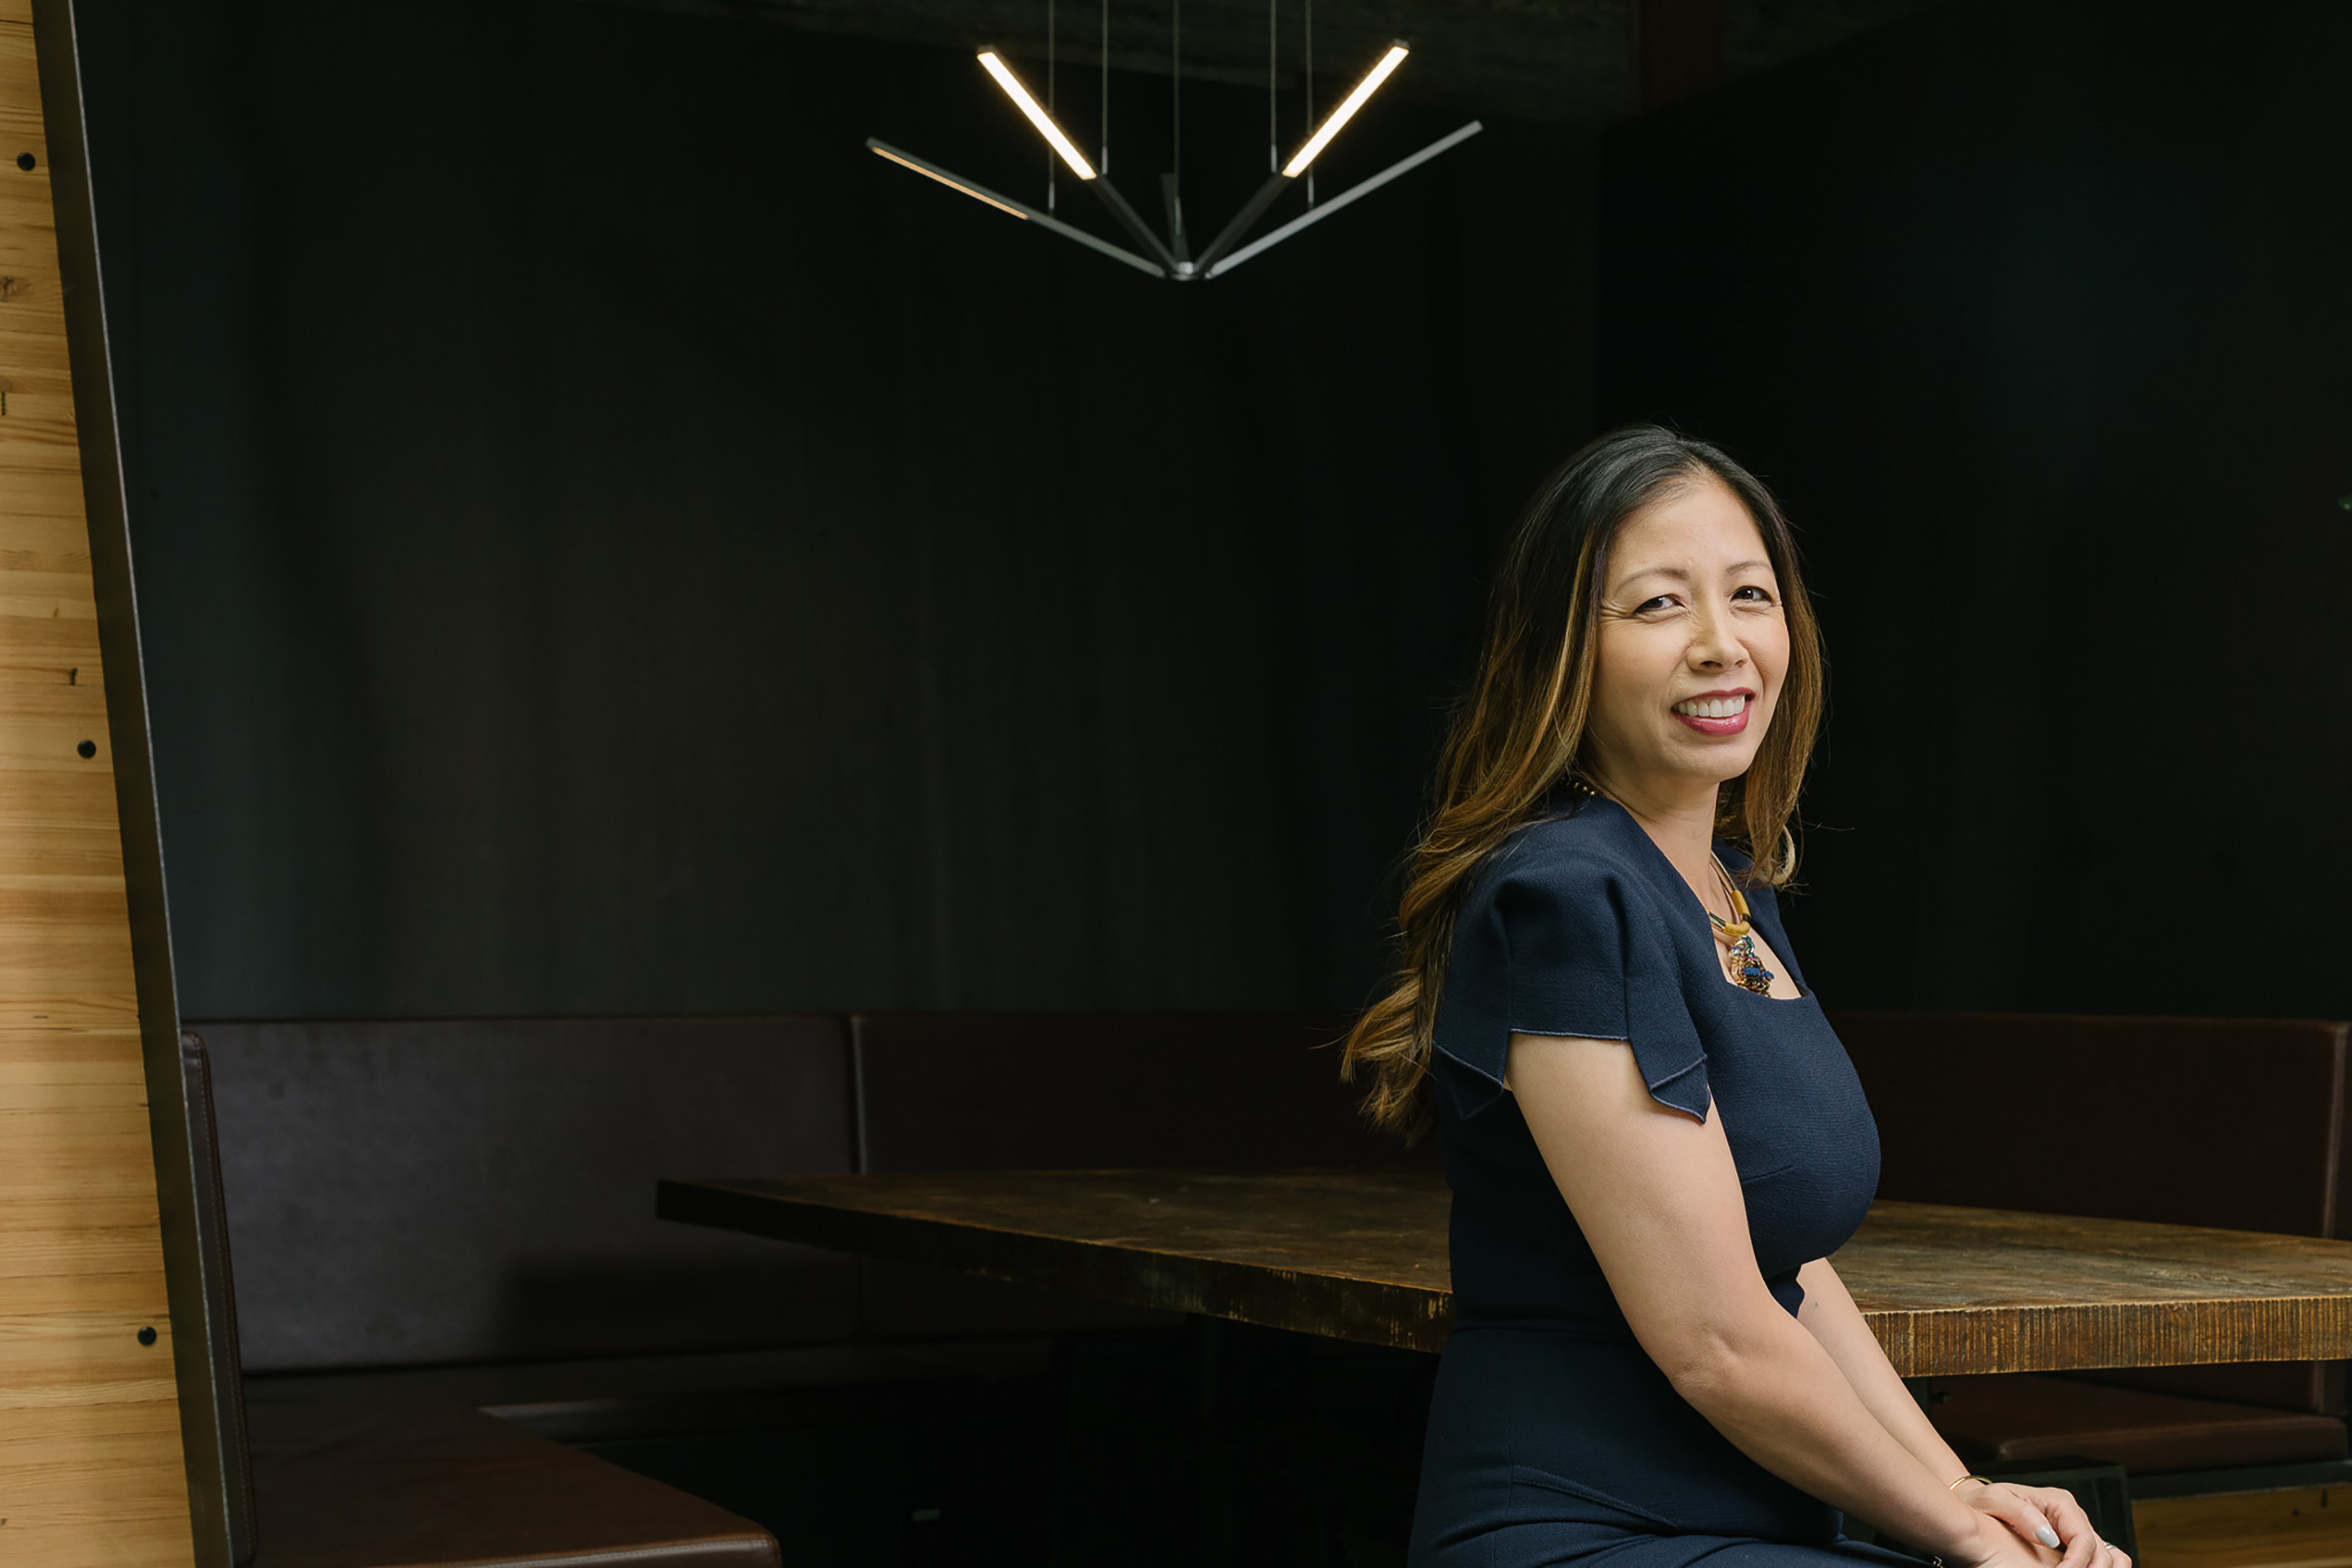 fortune.com - Emma Hinchliffe - Exclusive: Alphabet taps Wendy Tan White as CEO of new robotics company Intrinsic